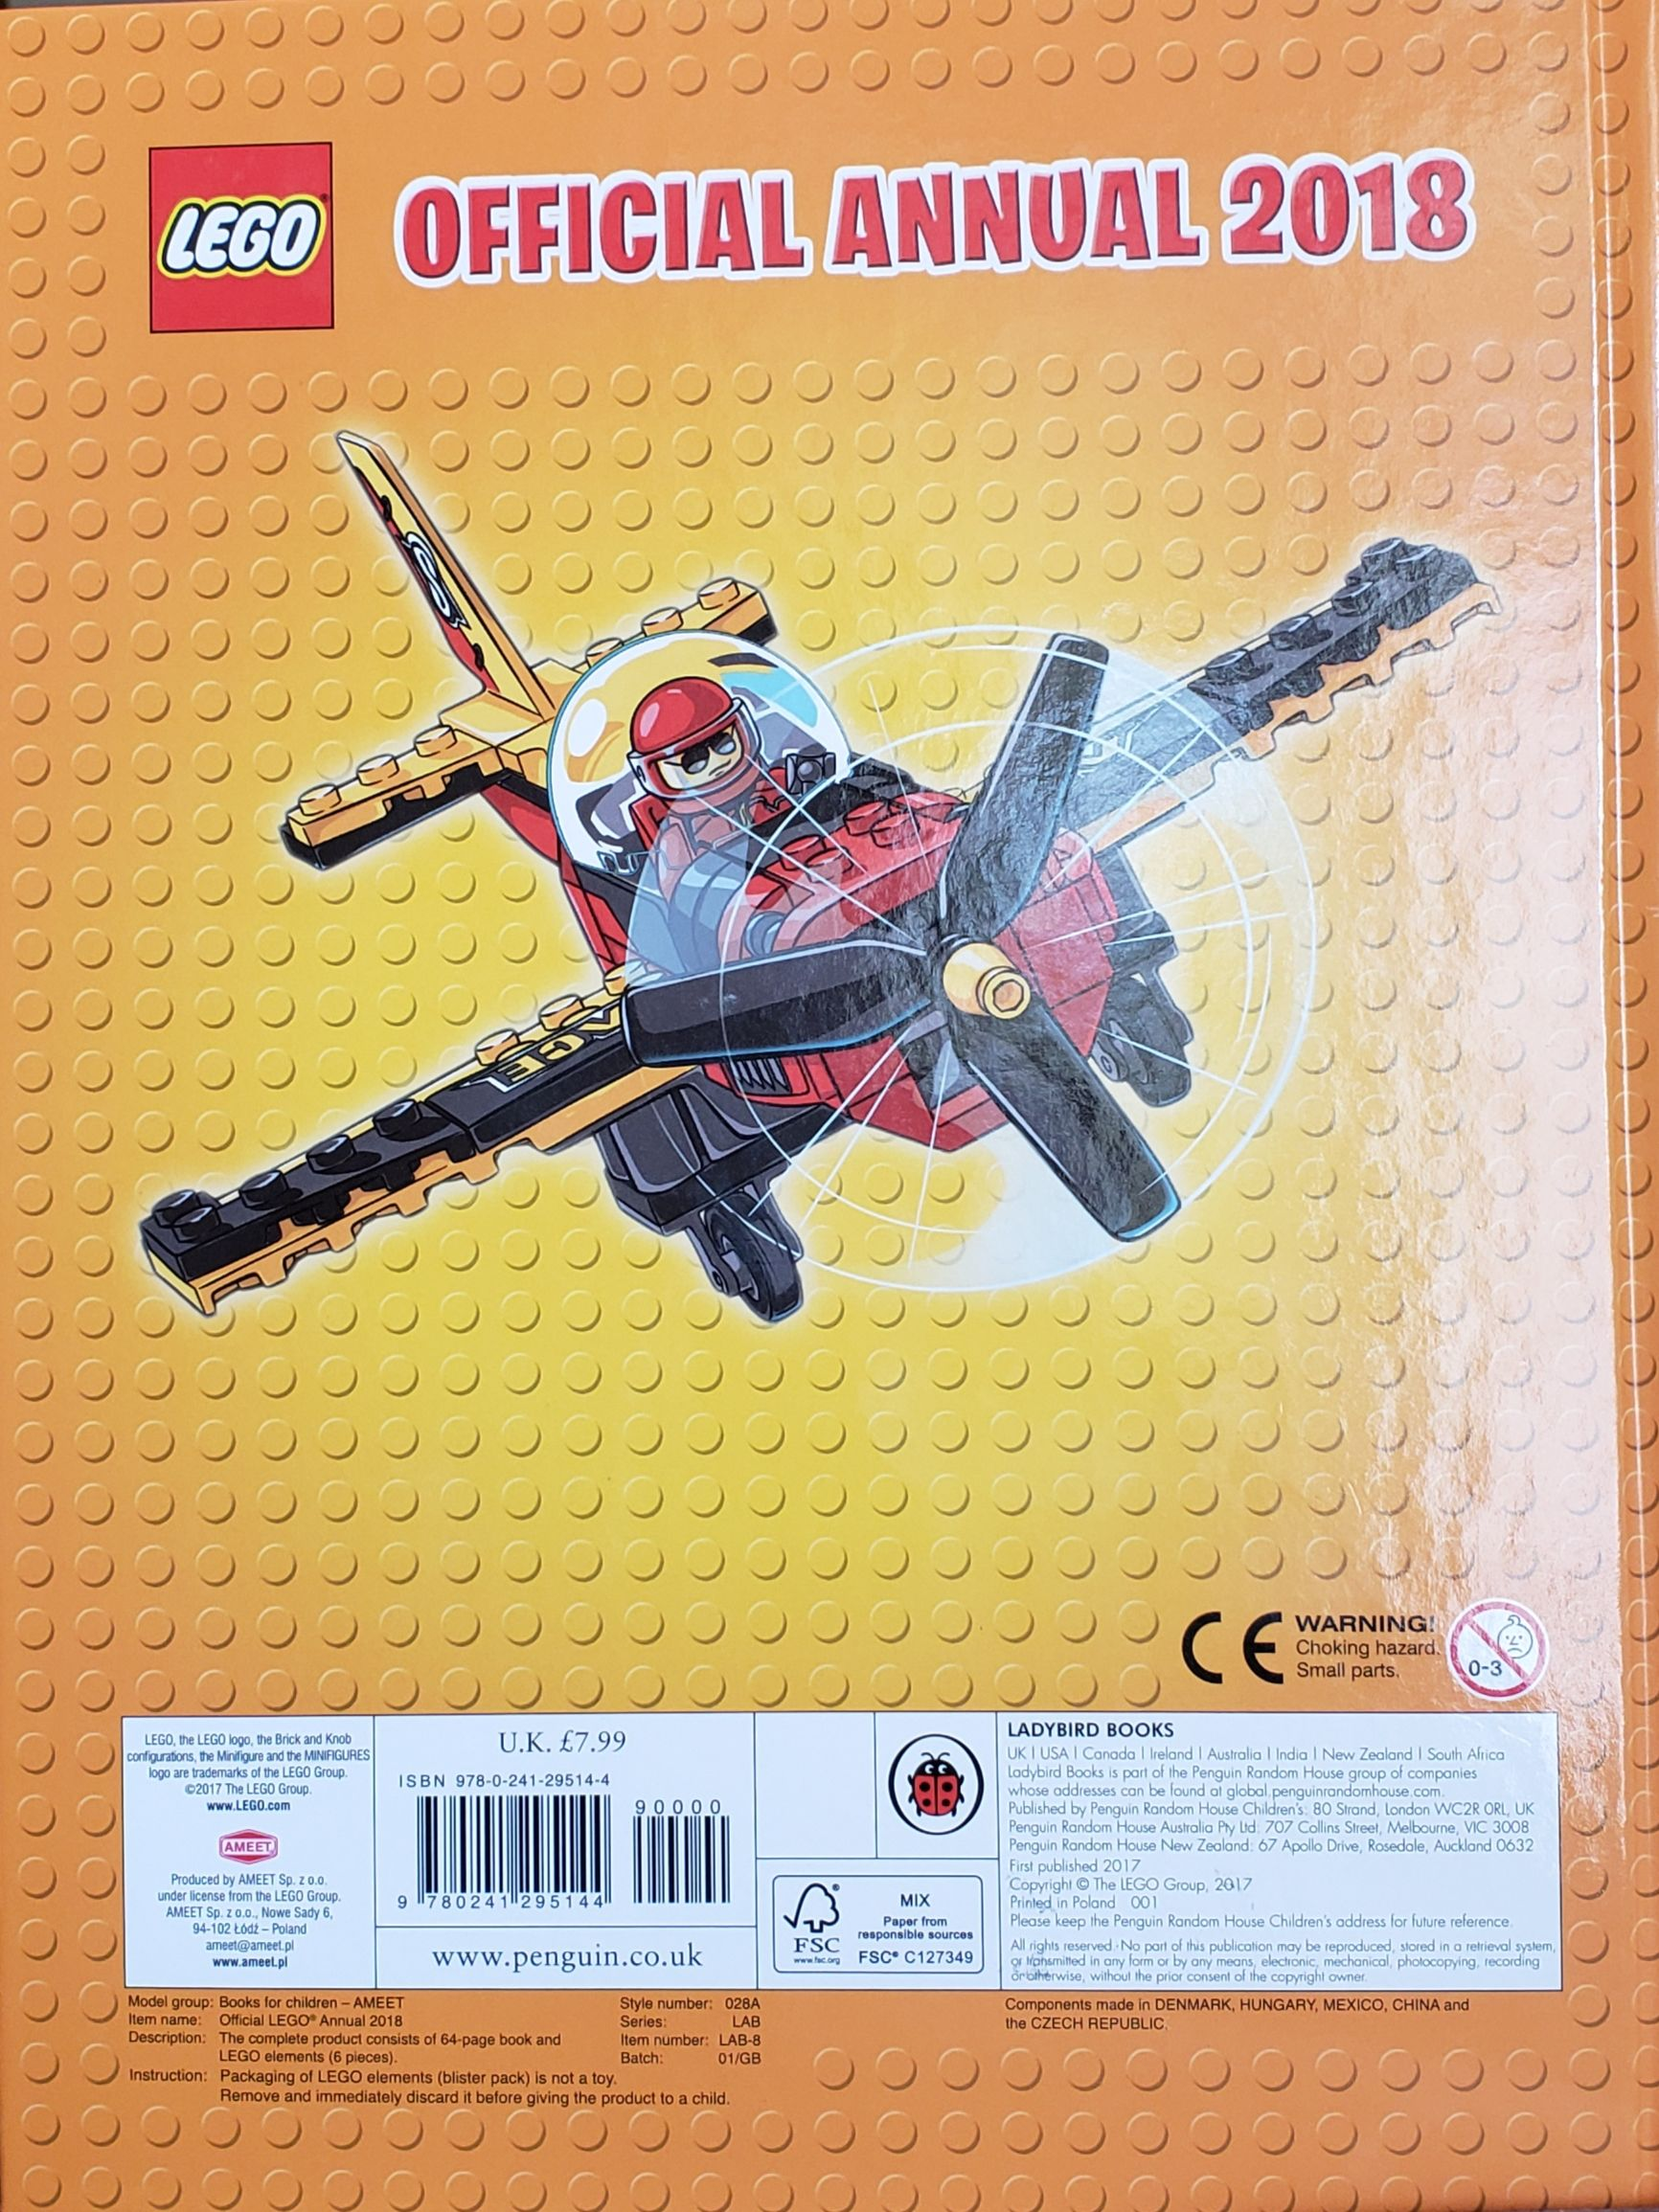 Official Annual 2018 LEGO - Books back image (back cover, second image)